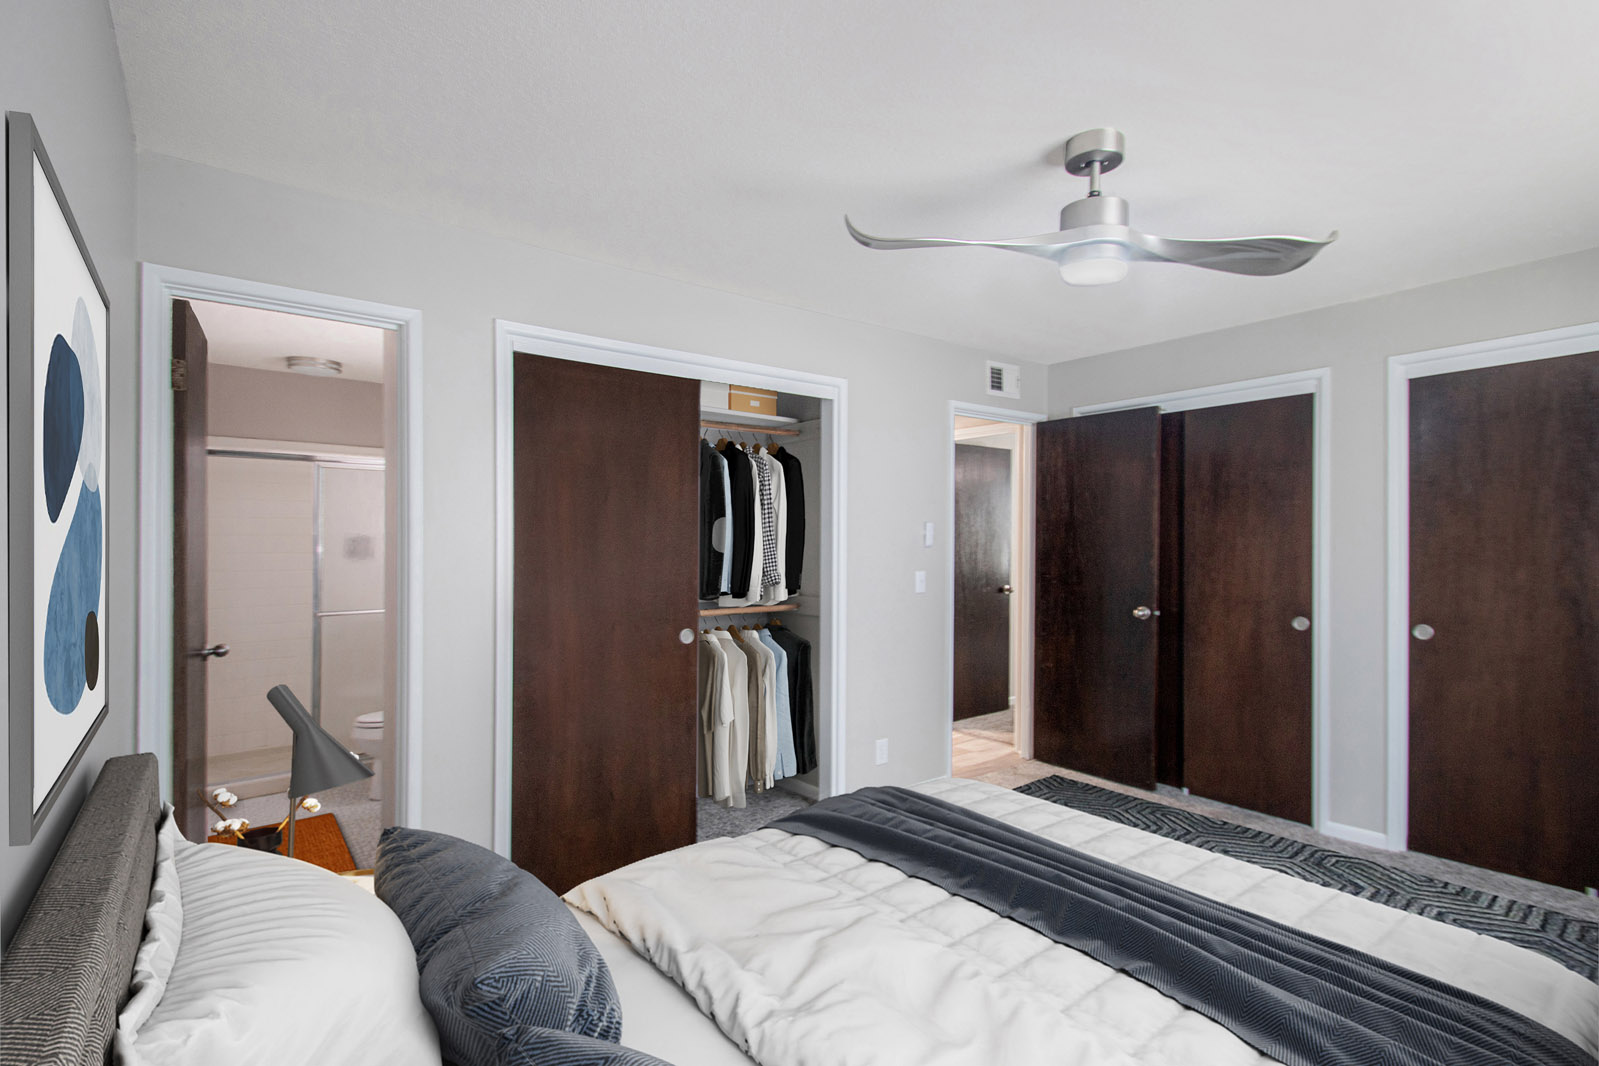 Spacious Bedrooms with Ample Closet Space at Pinehill Park in Bellevue, Nebraska